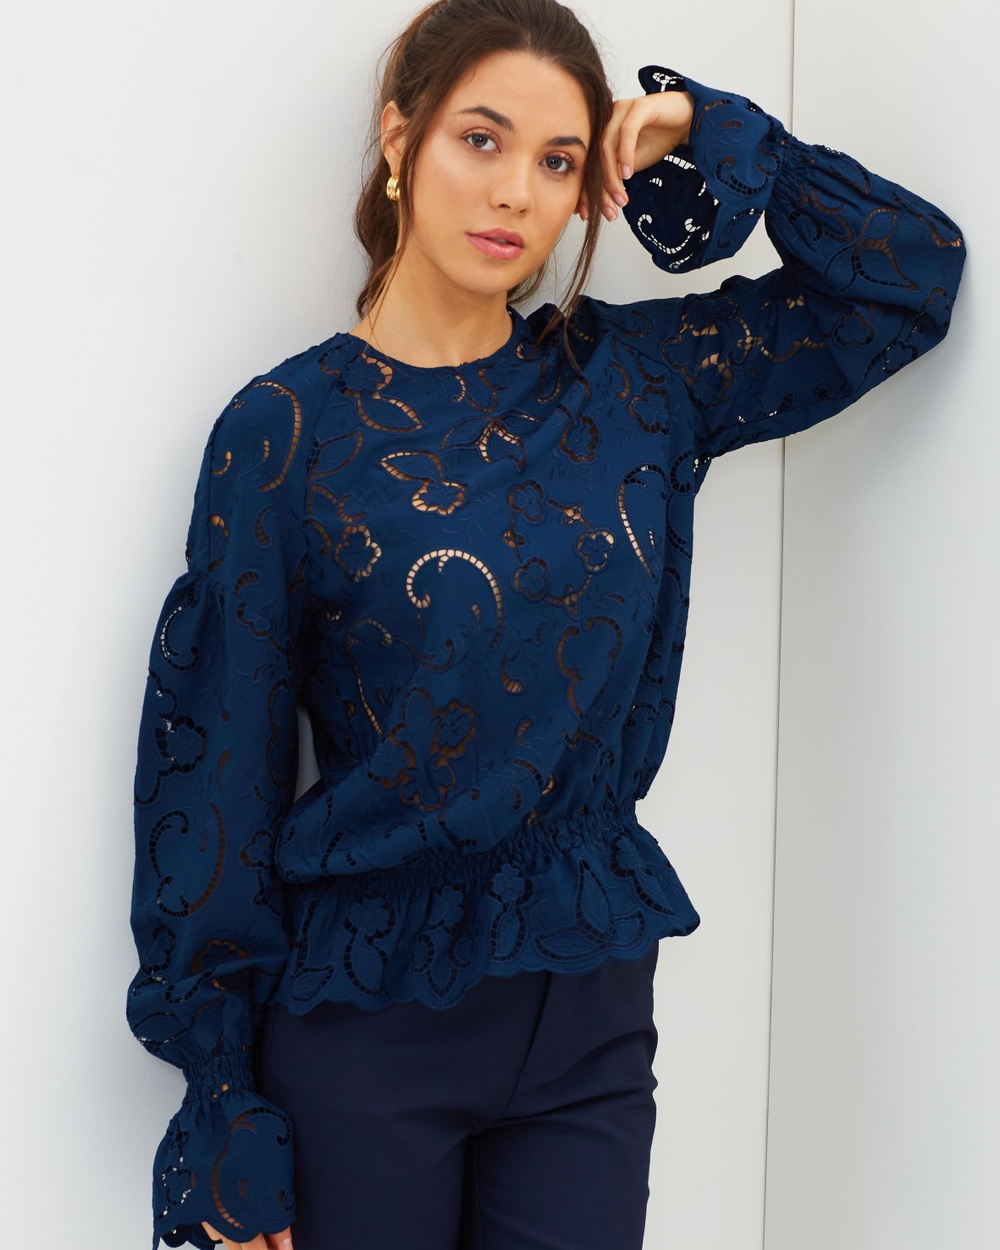 Perseverance Lily Cut Out Embroidered Crepe Blouse Tops Navy Lily Cut-Out Embroidered Crepe Blouse